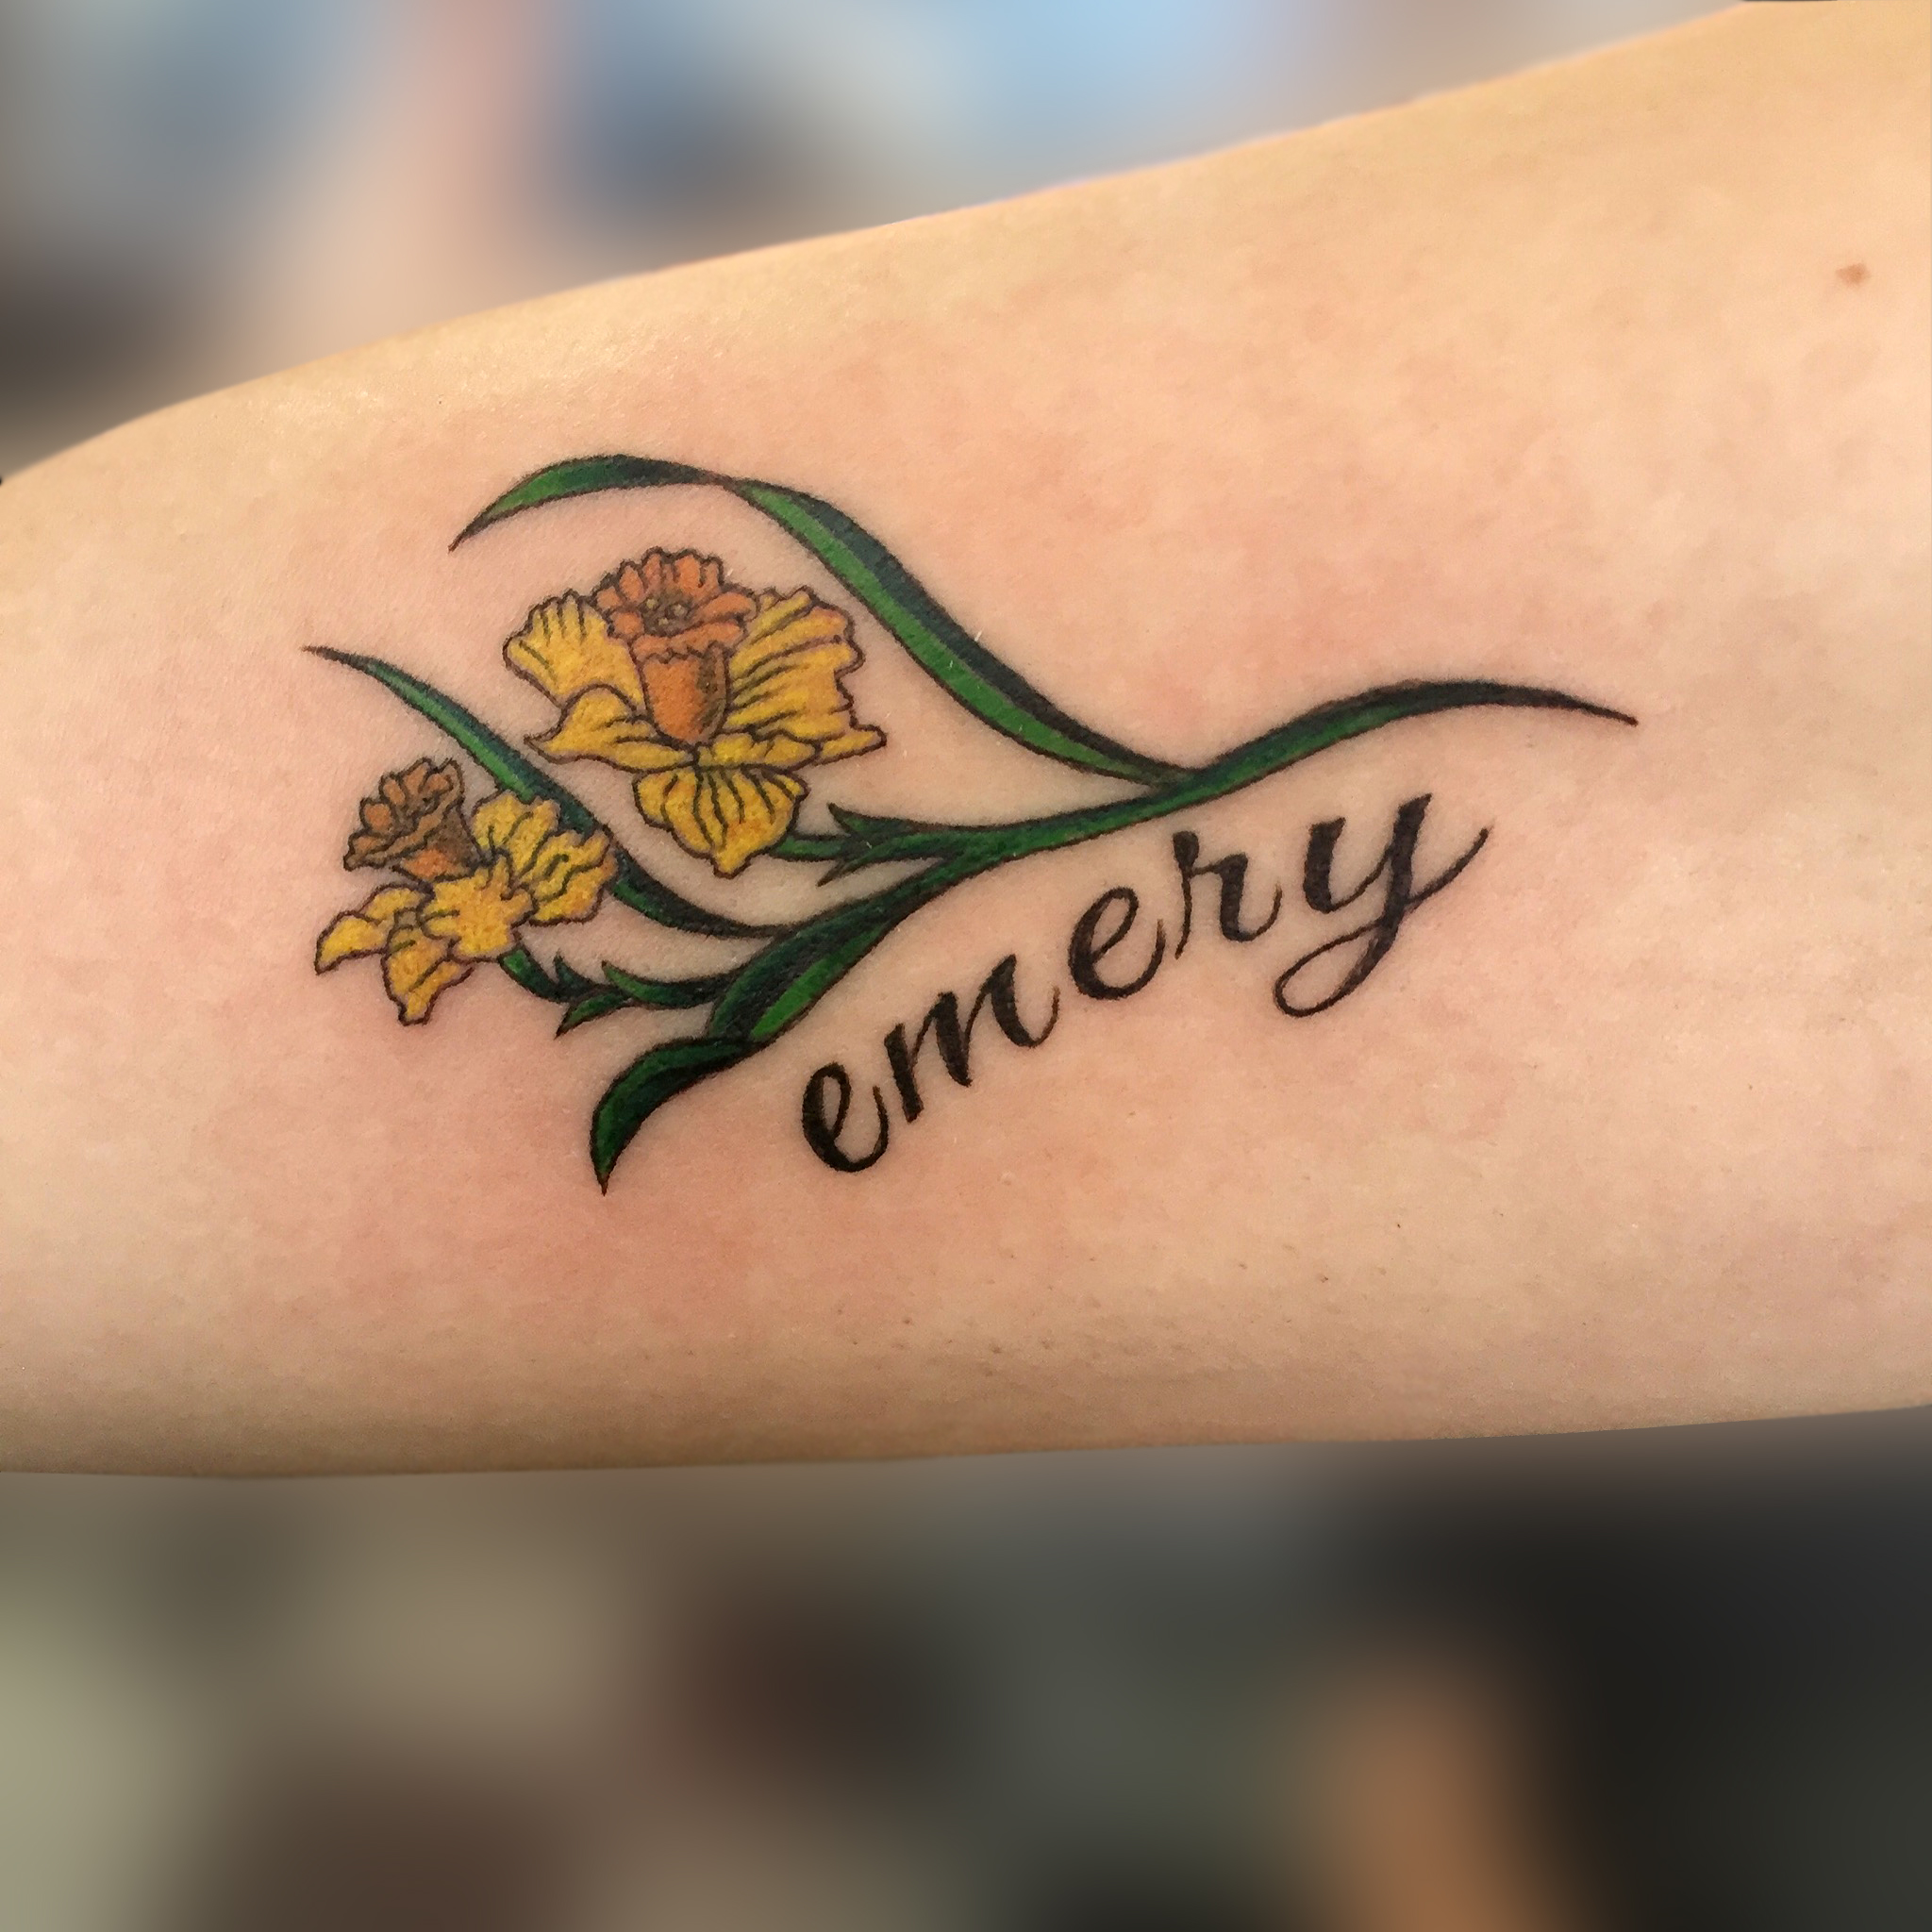 Q Tattoo in Huntington Beach - Karel Beck - Emery